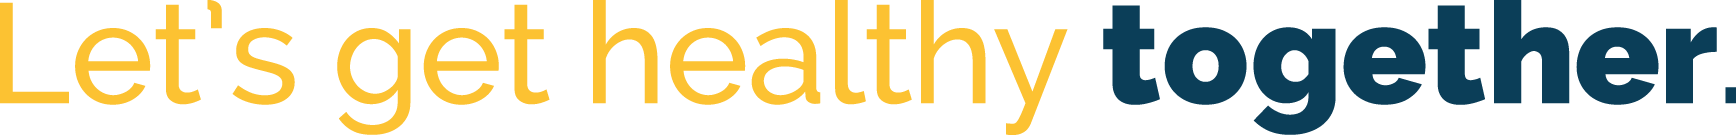 Let's Get Healthy Together Yellow_Blue.png